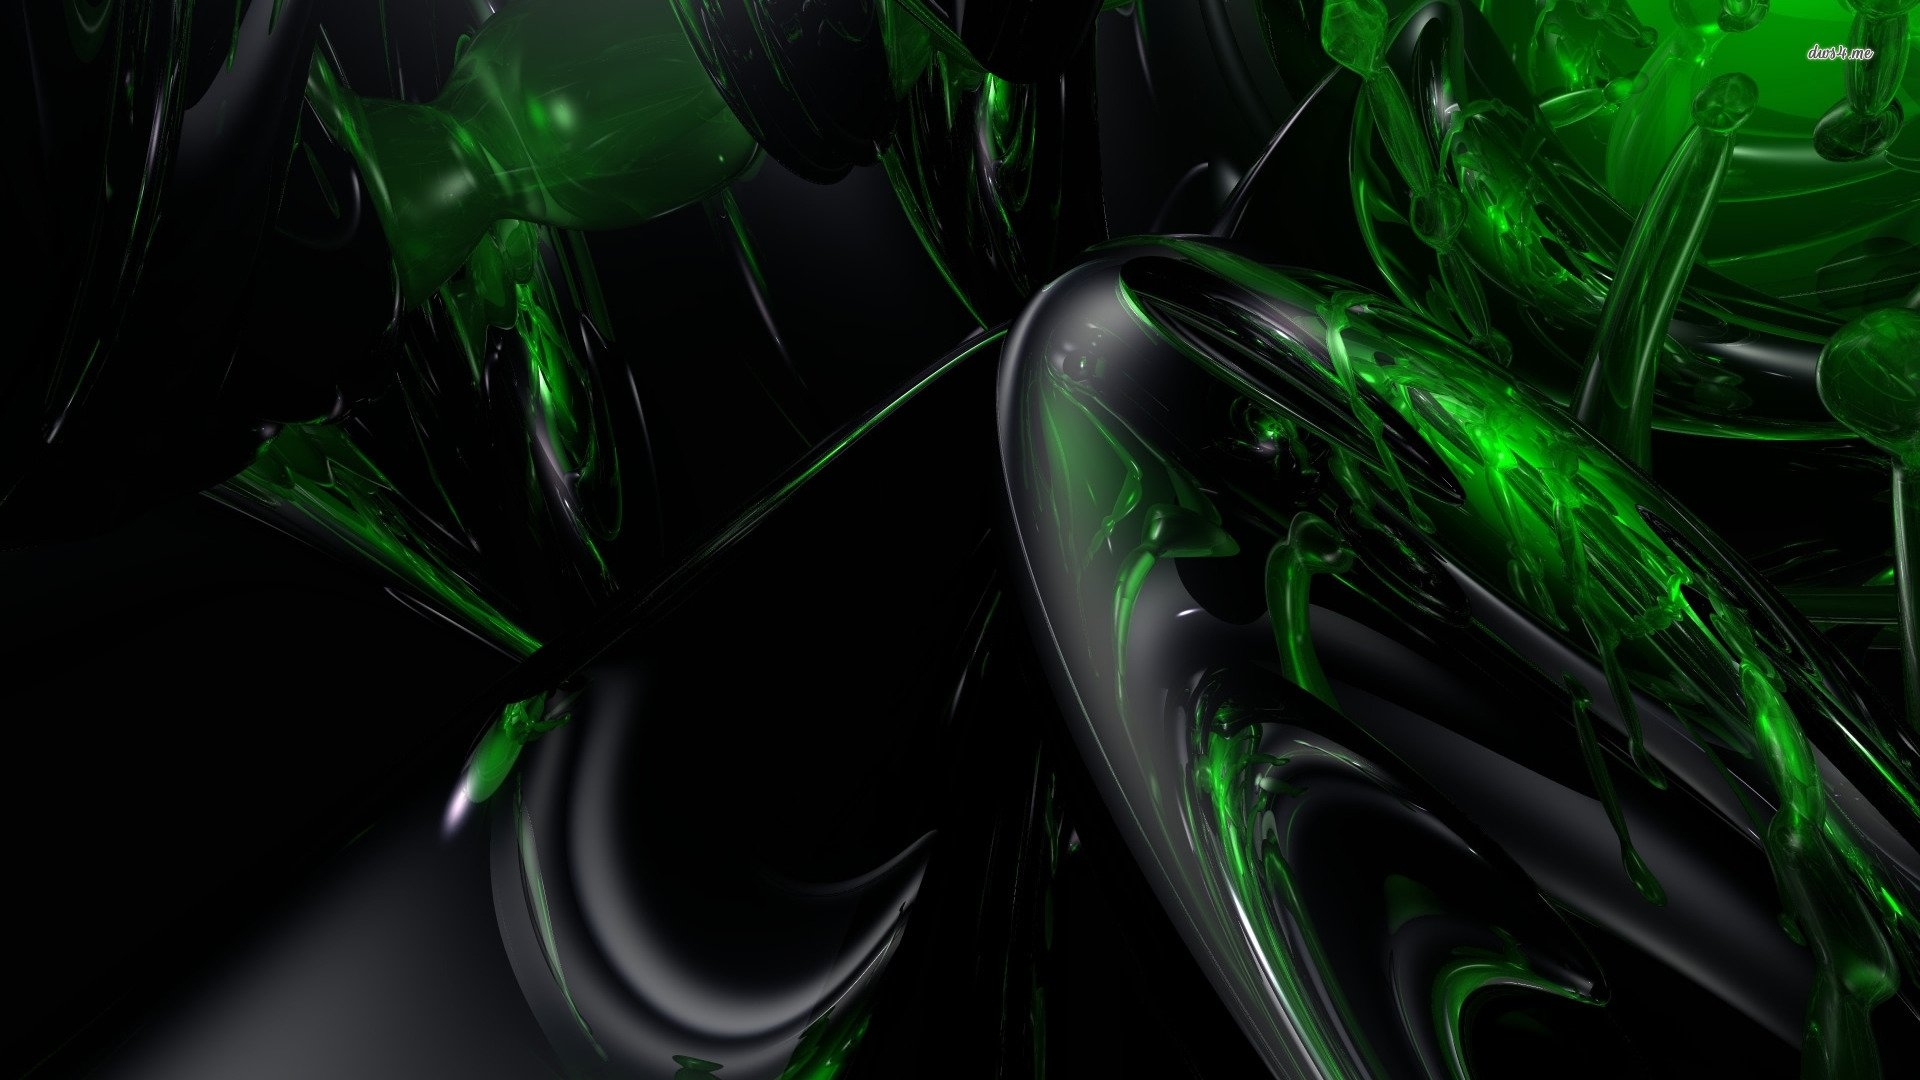 themed wallpapers black abstract another wallpaper 1920x1080